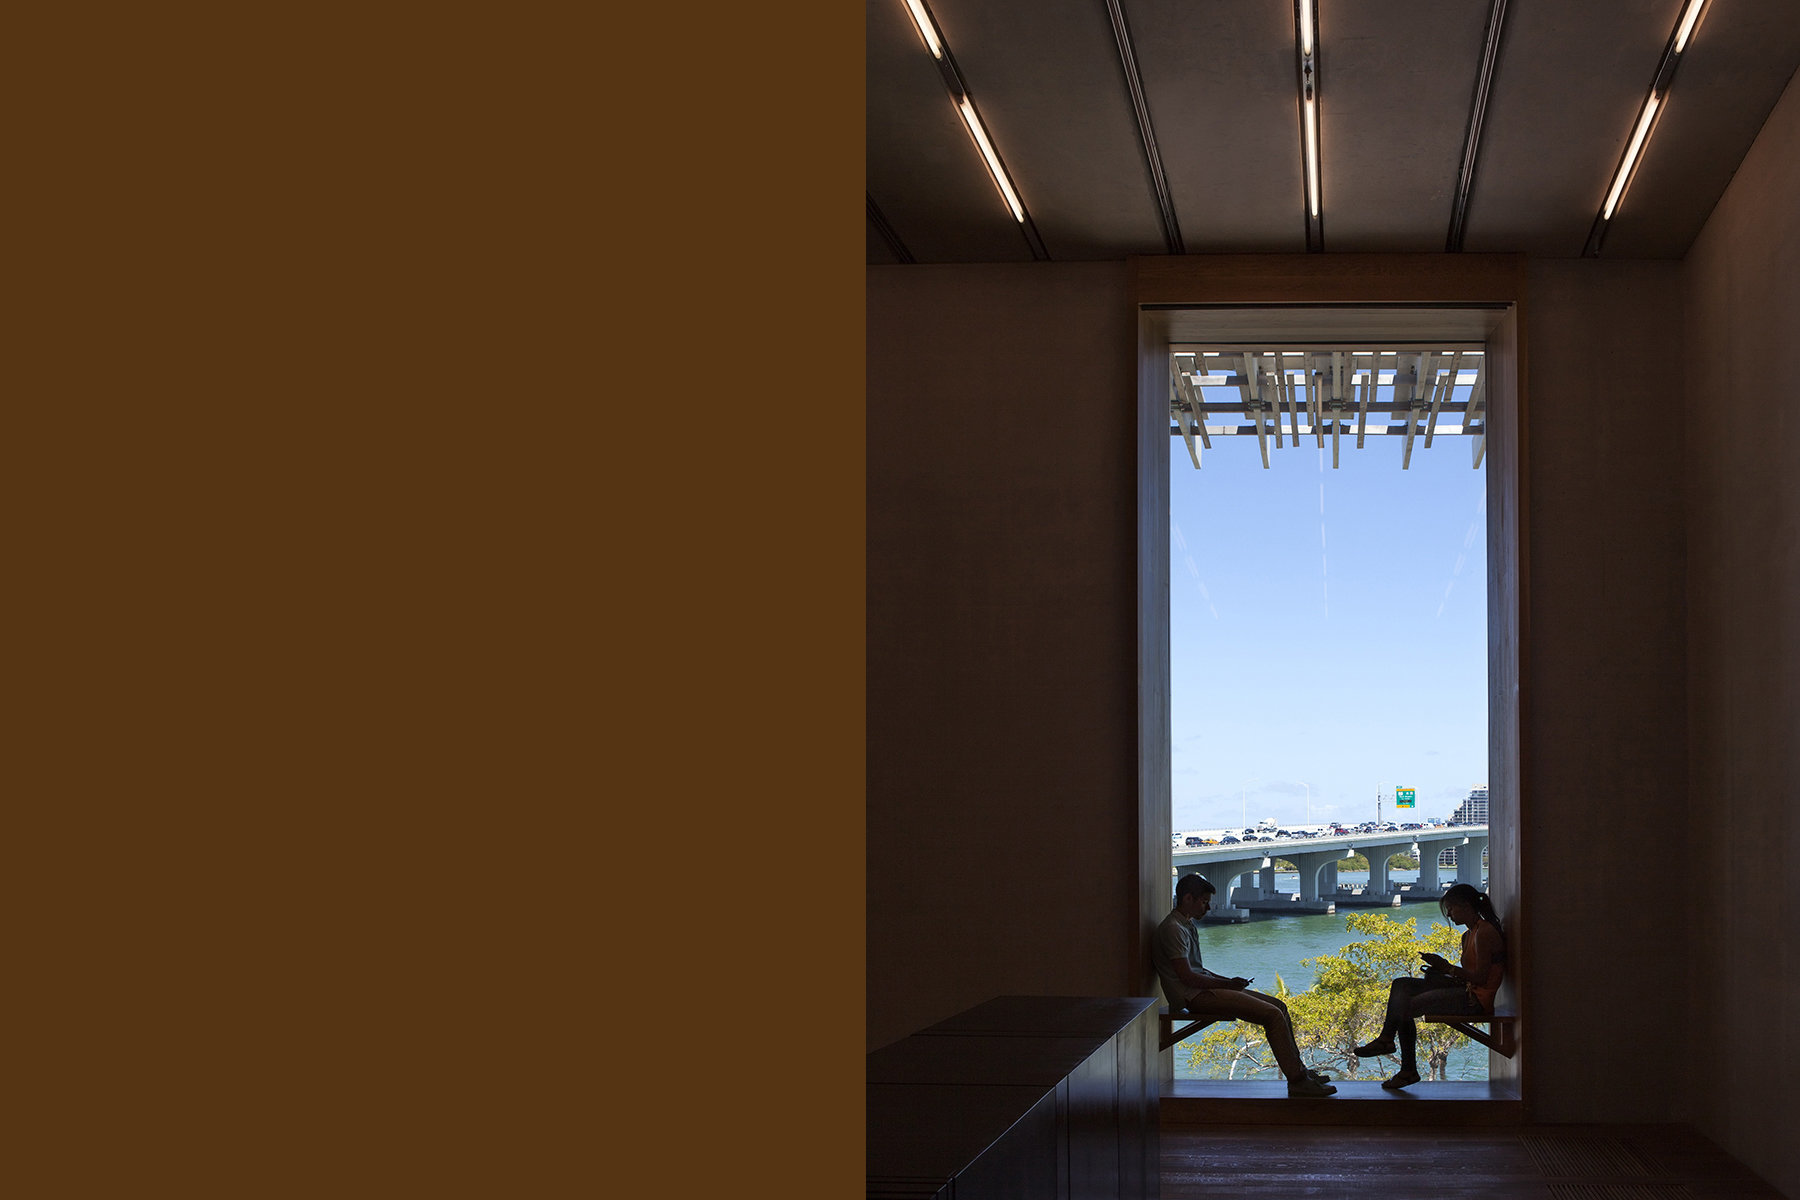 Astounding Perez Art Museum Window Seat Paul Stoppi Architectural Pdpeps Interior Chair Design Pdpepsorg